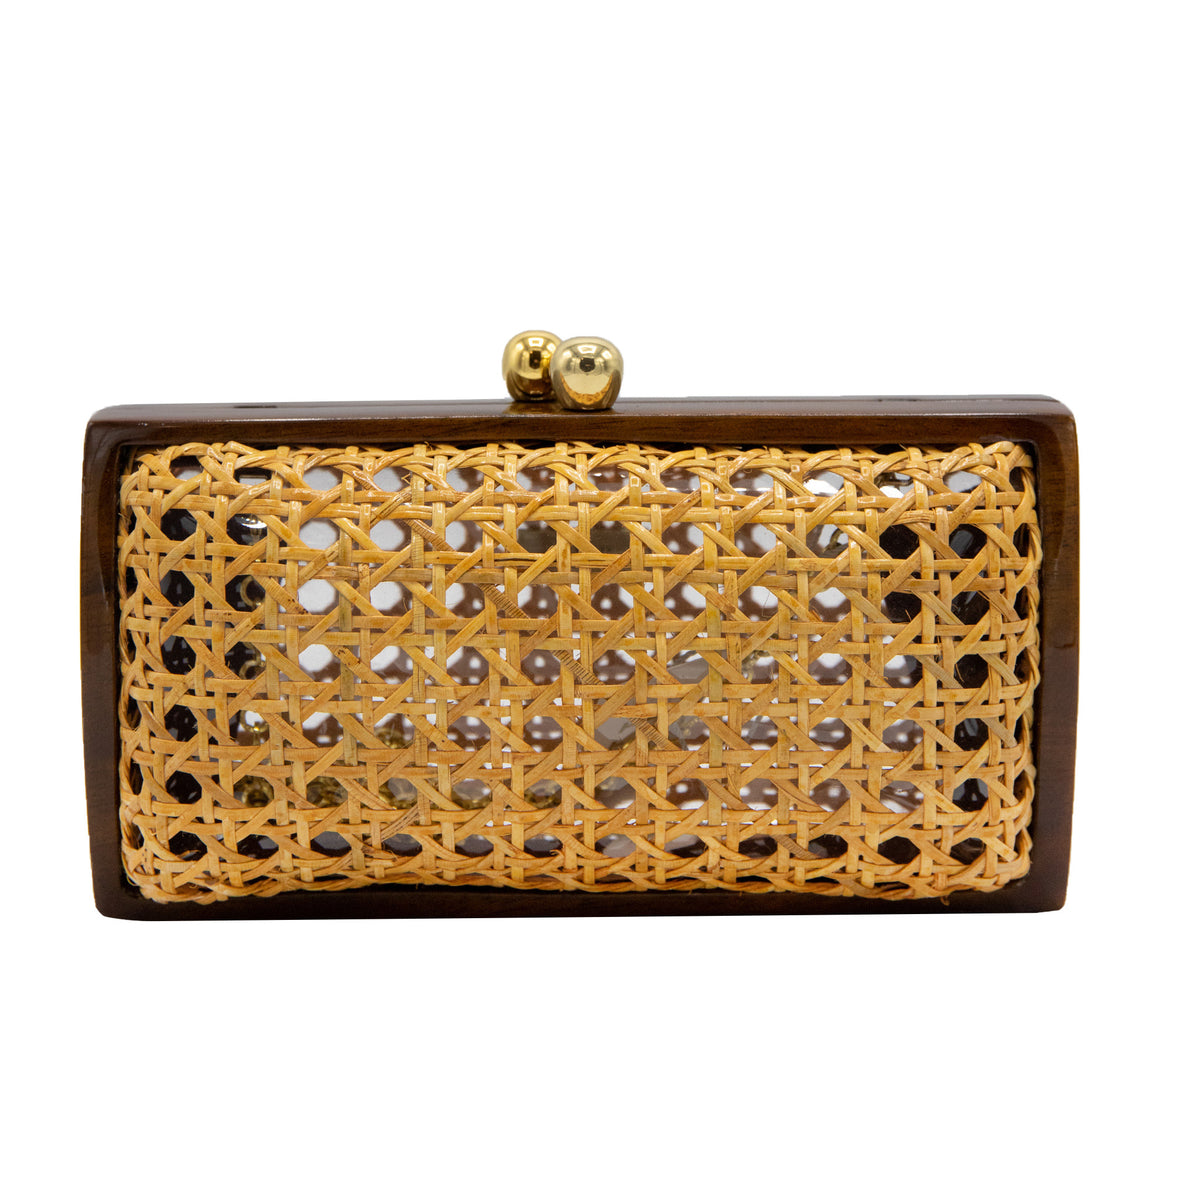 Serpui Farah Diba Cane Clutch, Wood